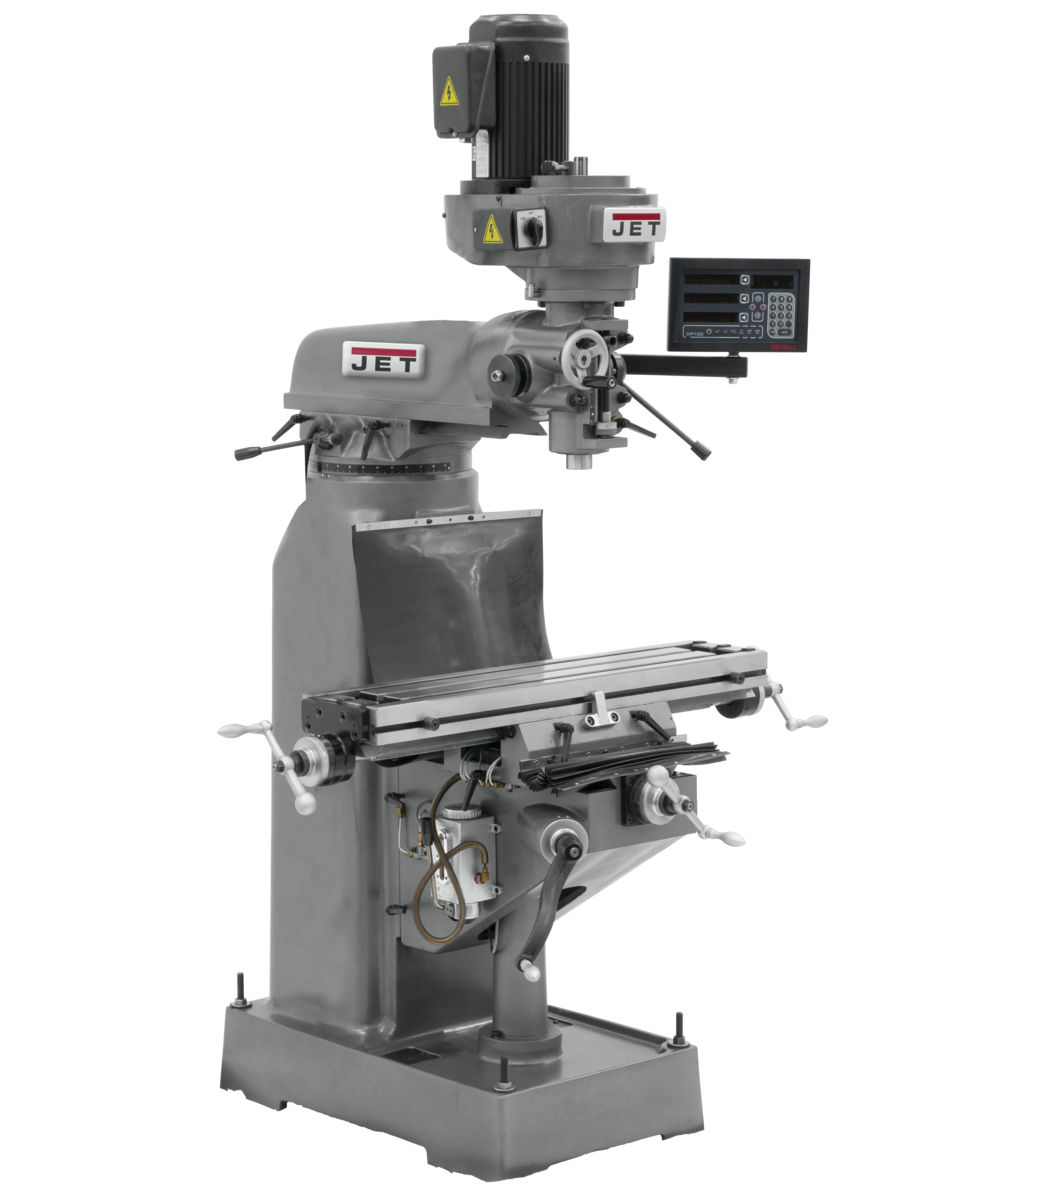 JVM-836-3 Mill With 3-Axis Newall DP700 DRO (Quill) With X-Axis Powerfeed